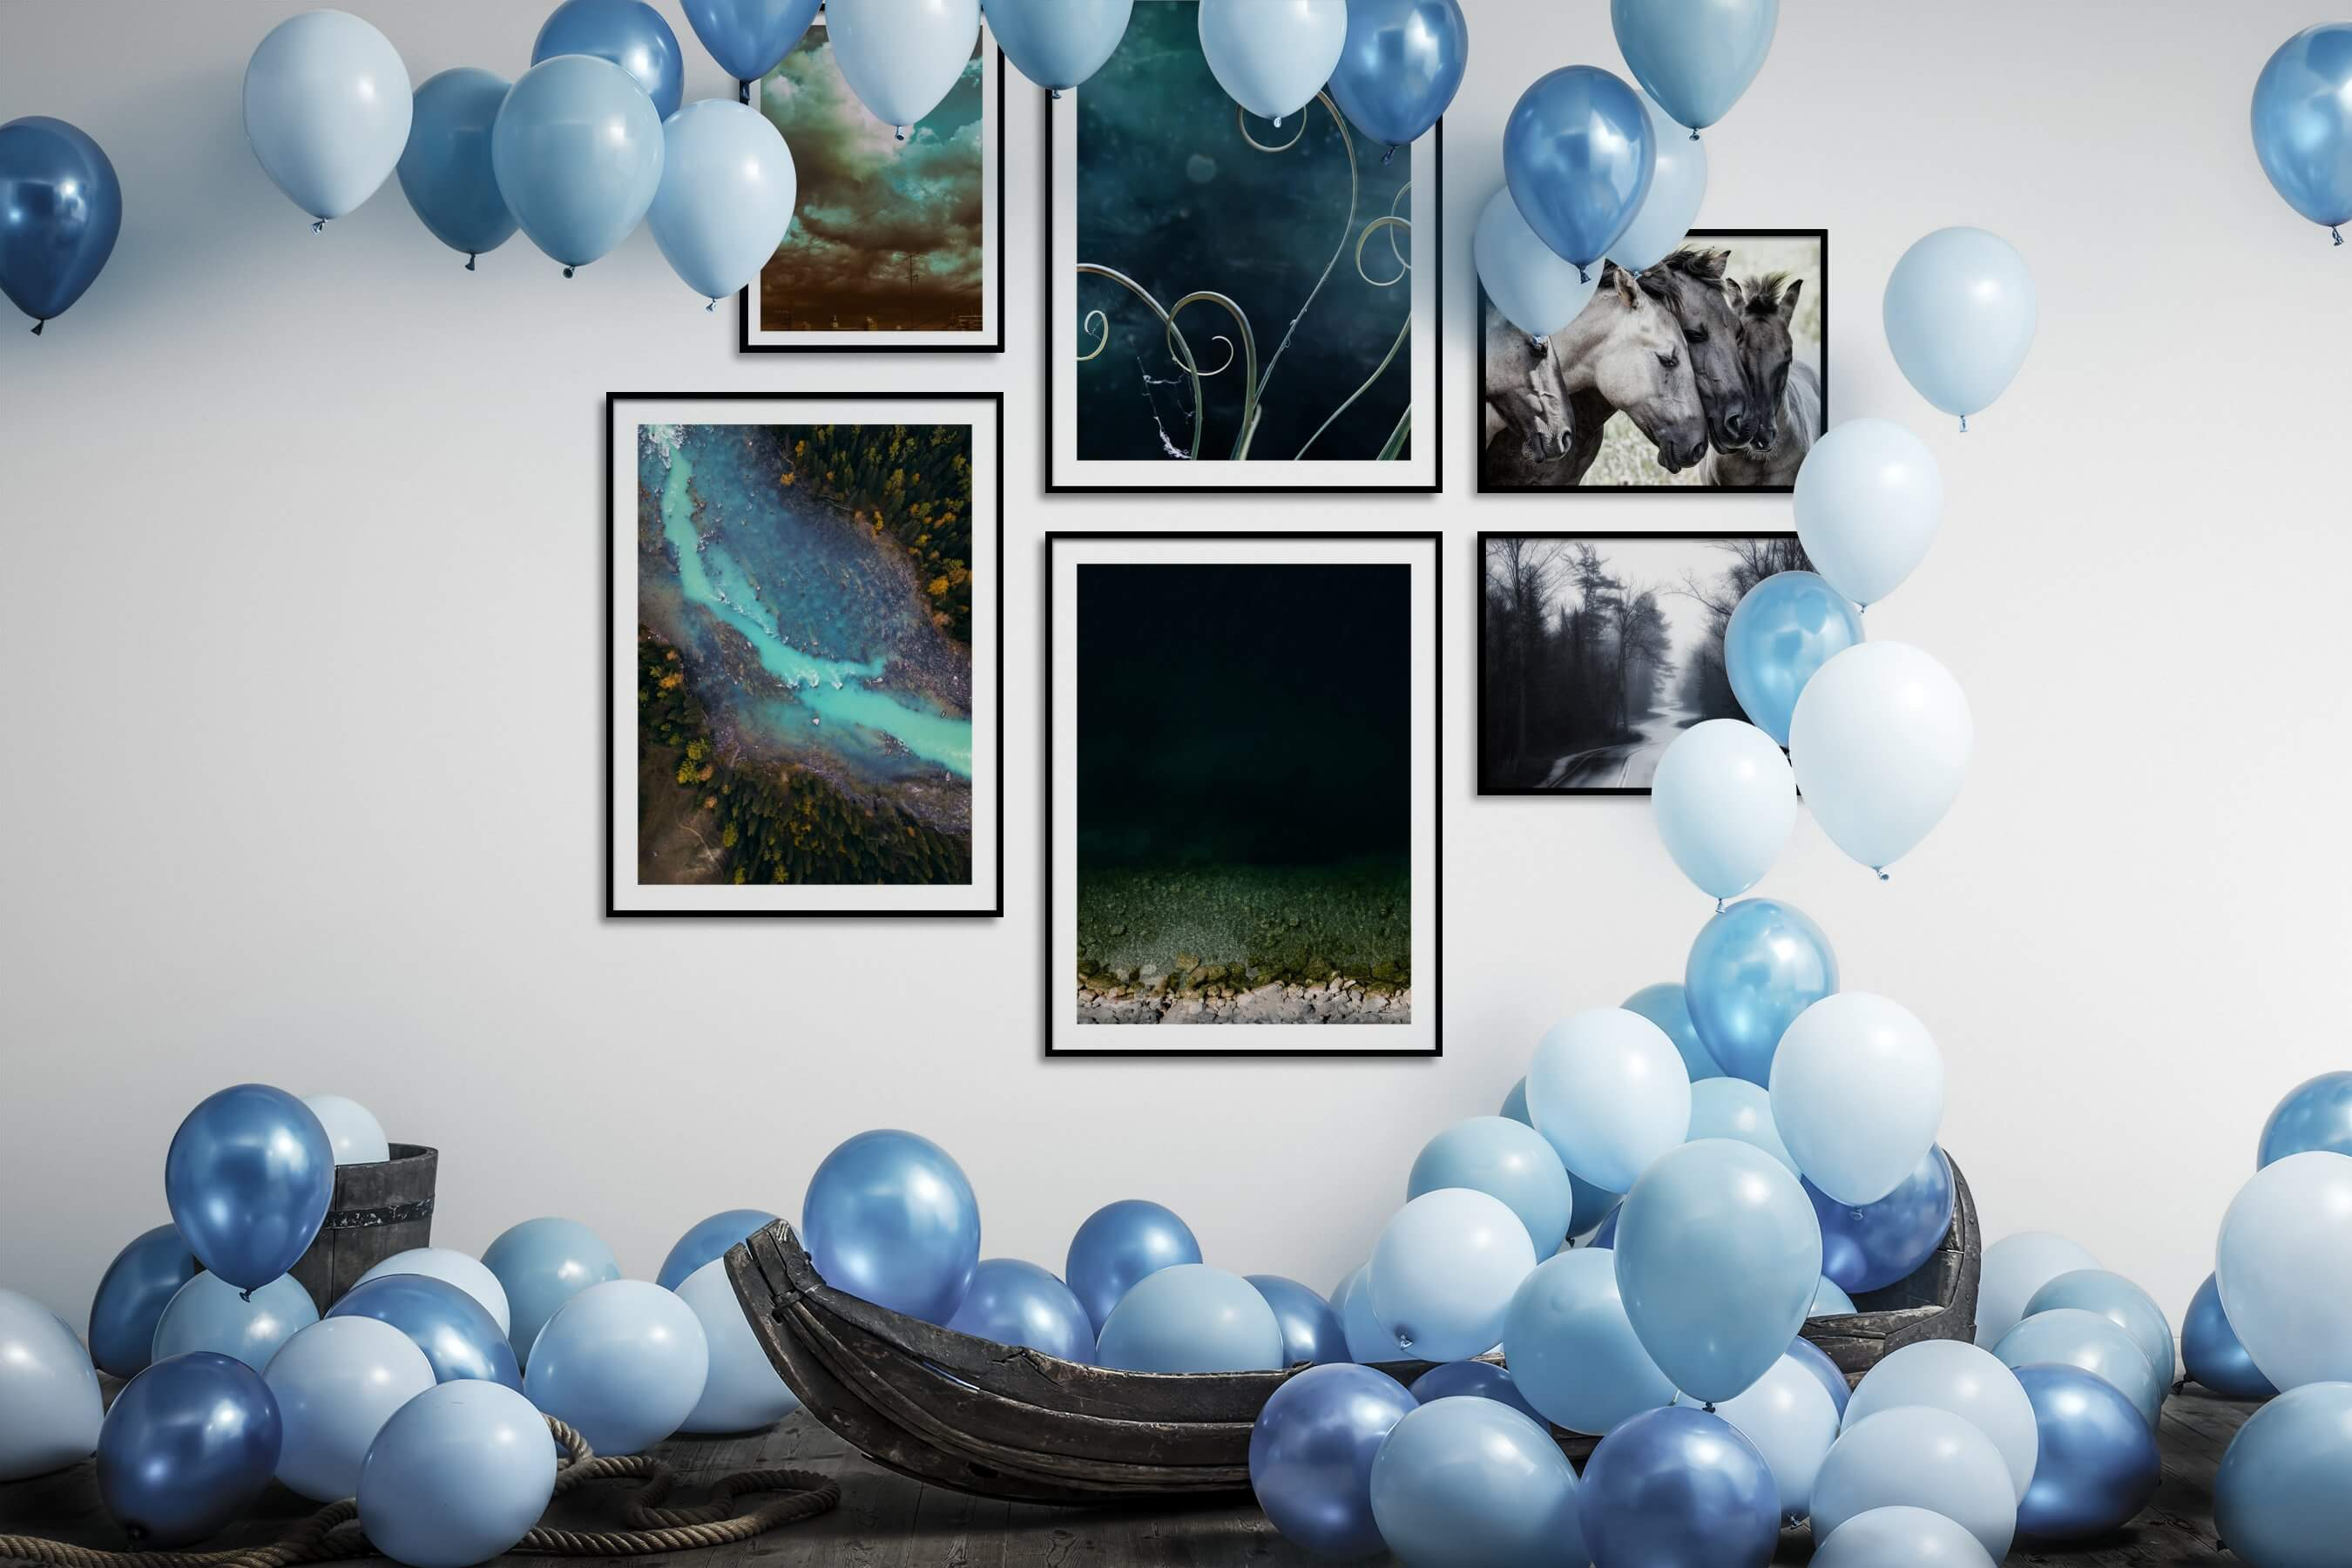 Gallery wall idea with six framed pictures arranged on a wall depicting City Life, Vintage, Flowers & Plants, For the Moderate, Nature, For the Minimalist, Beach & Water, Animals, Country Life, and Black & White